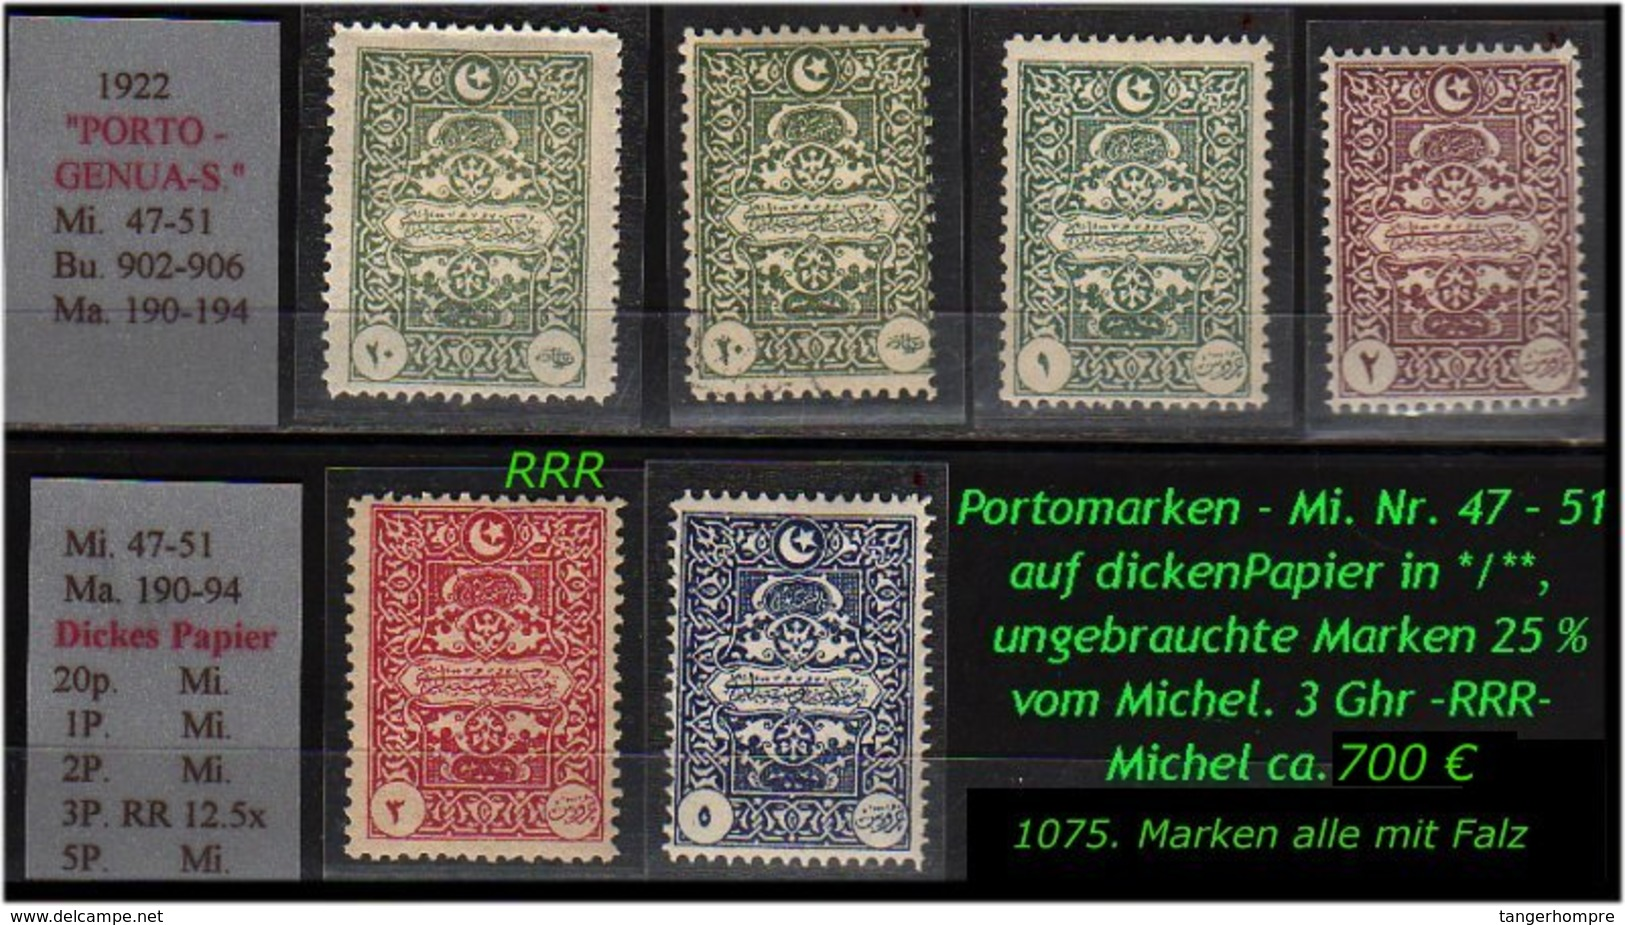 EARLY OTTOMAN SPECIALIZED FOR SPECIALIST, SEE....Porto - Mi. Nr. 47 - 51 - Mit Nr. 50 Dickes Papier -RR- - Nuevos